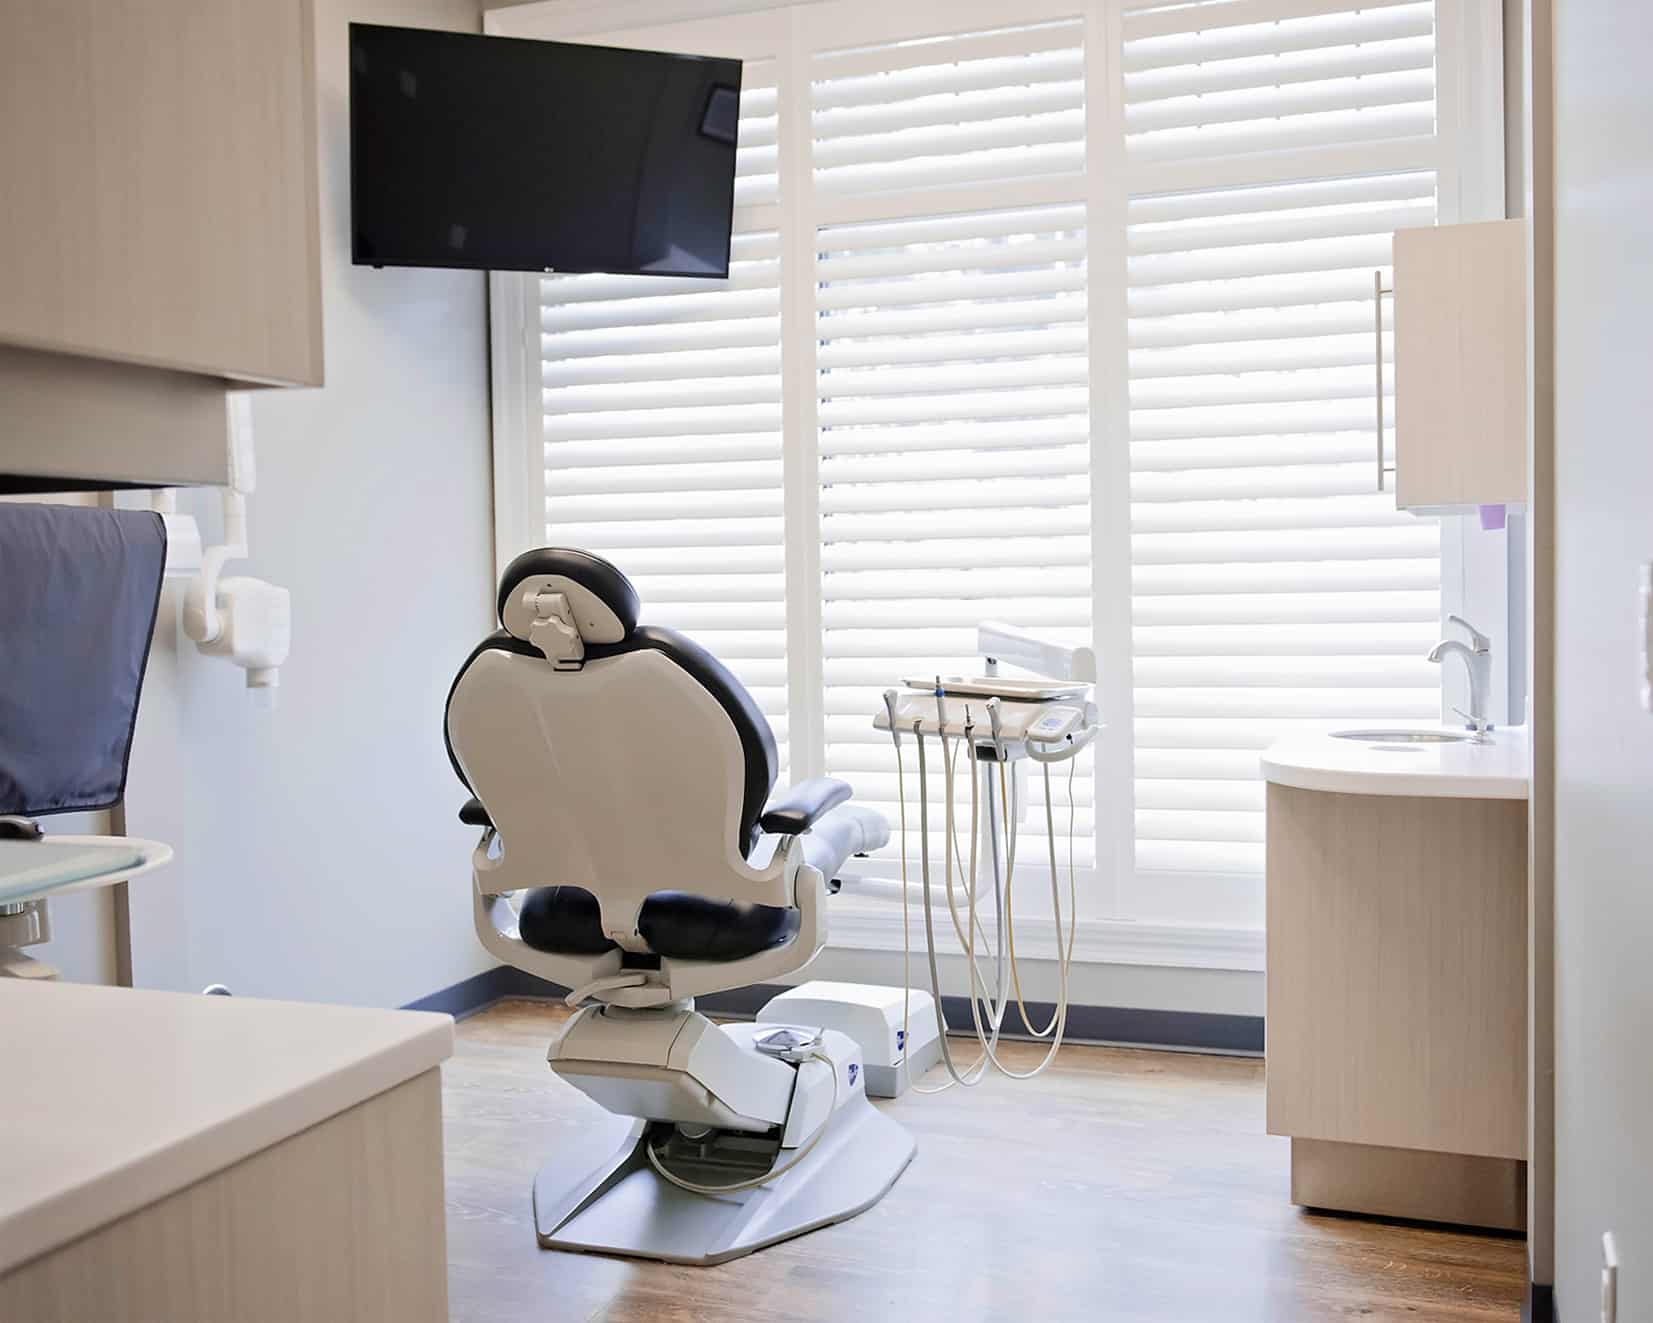 Cranberry Dental Studio | Hygiene Room